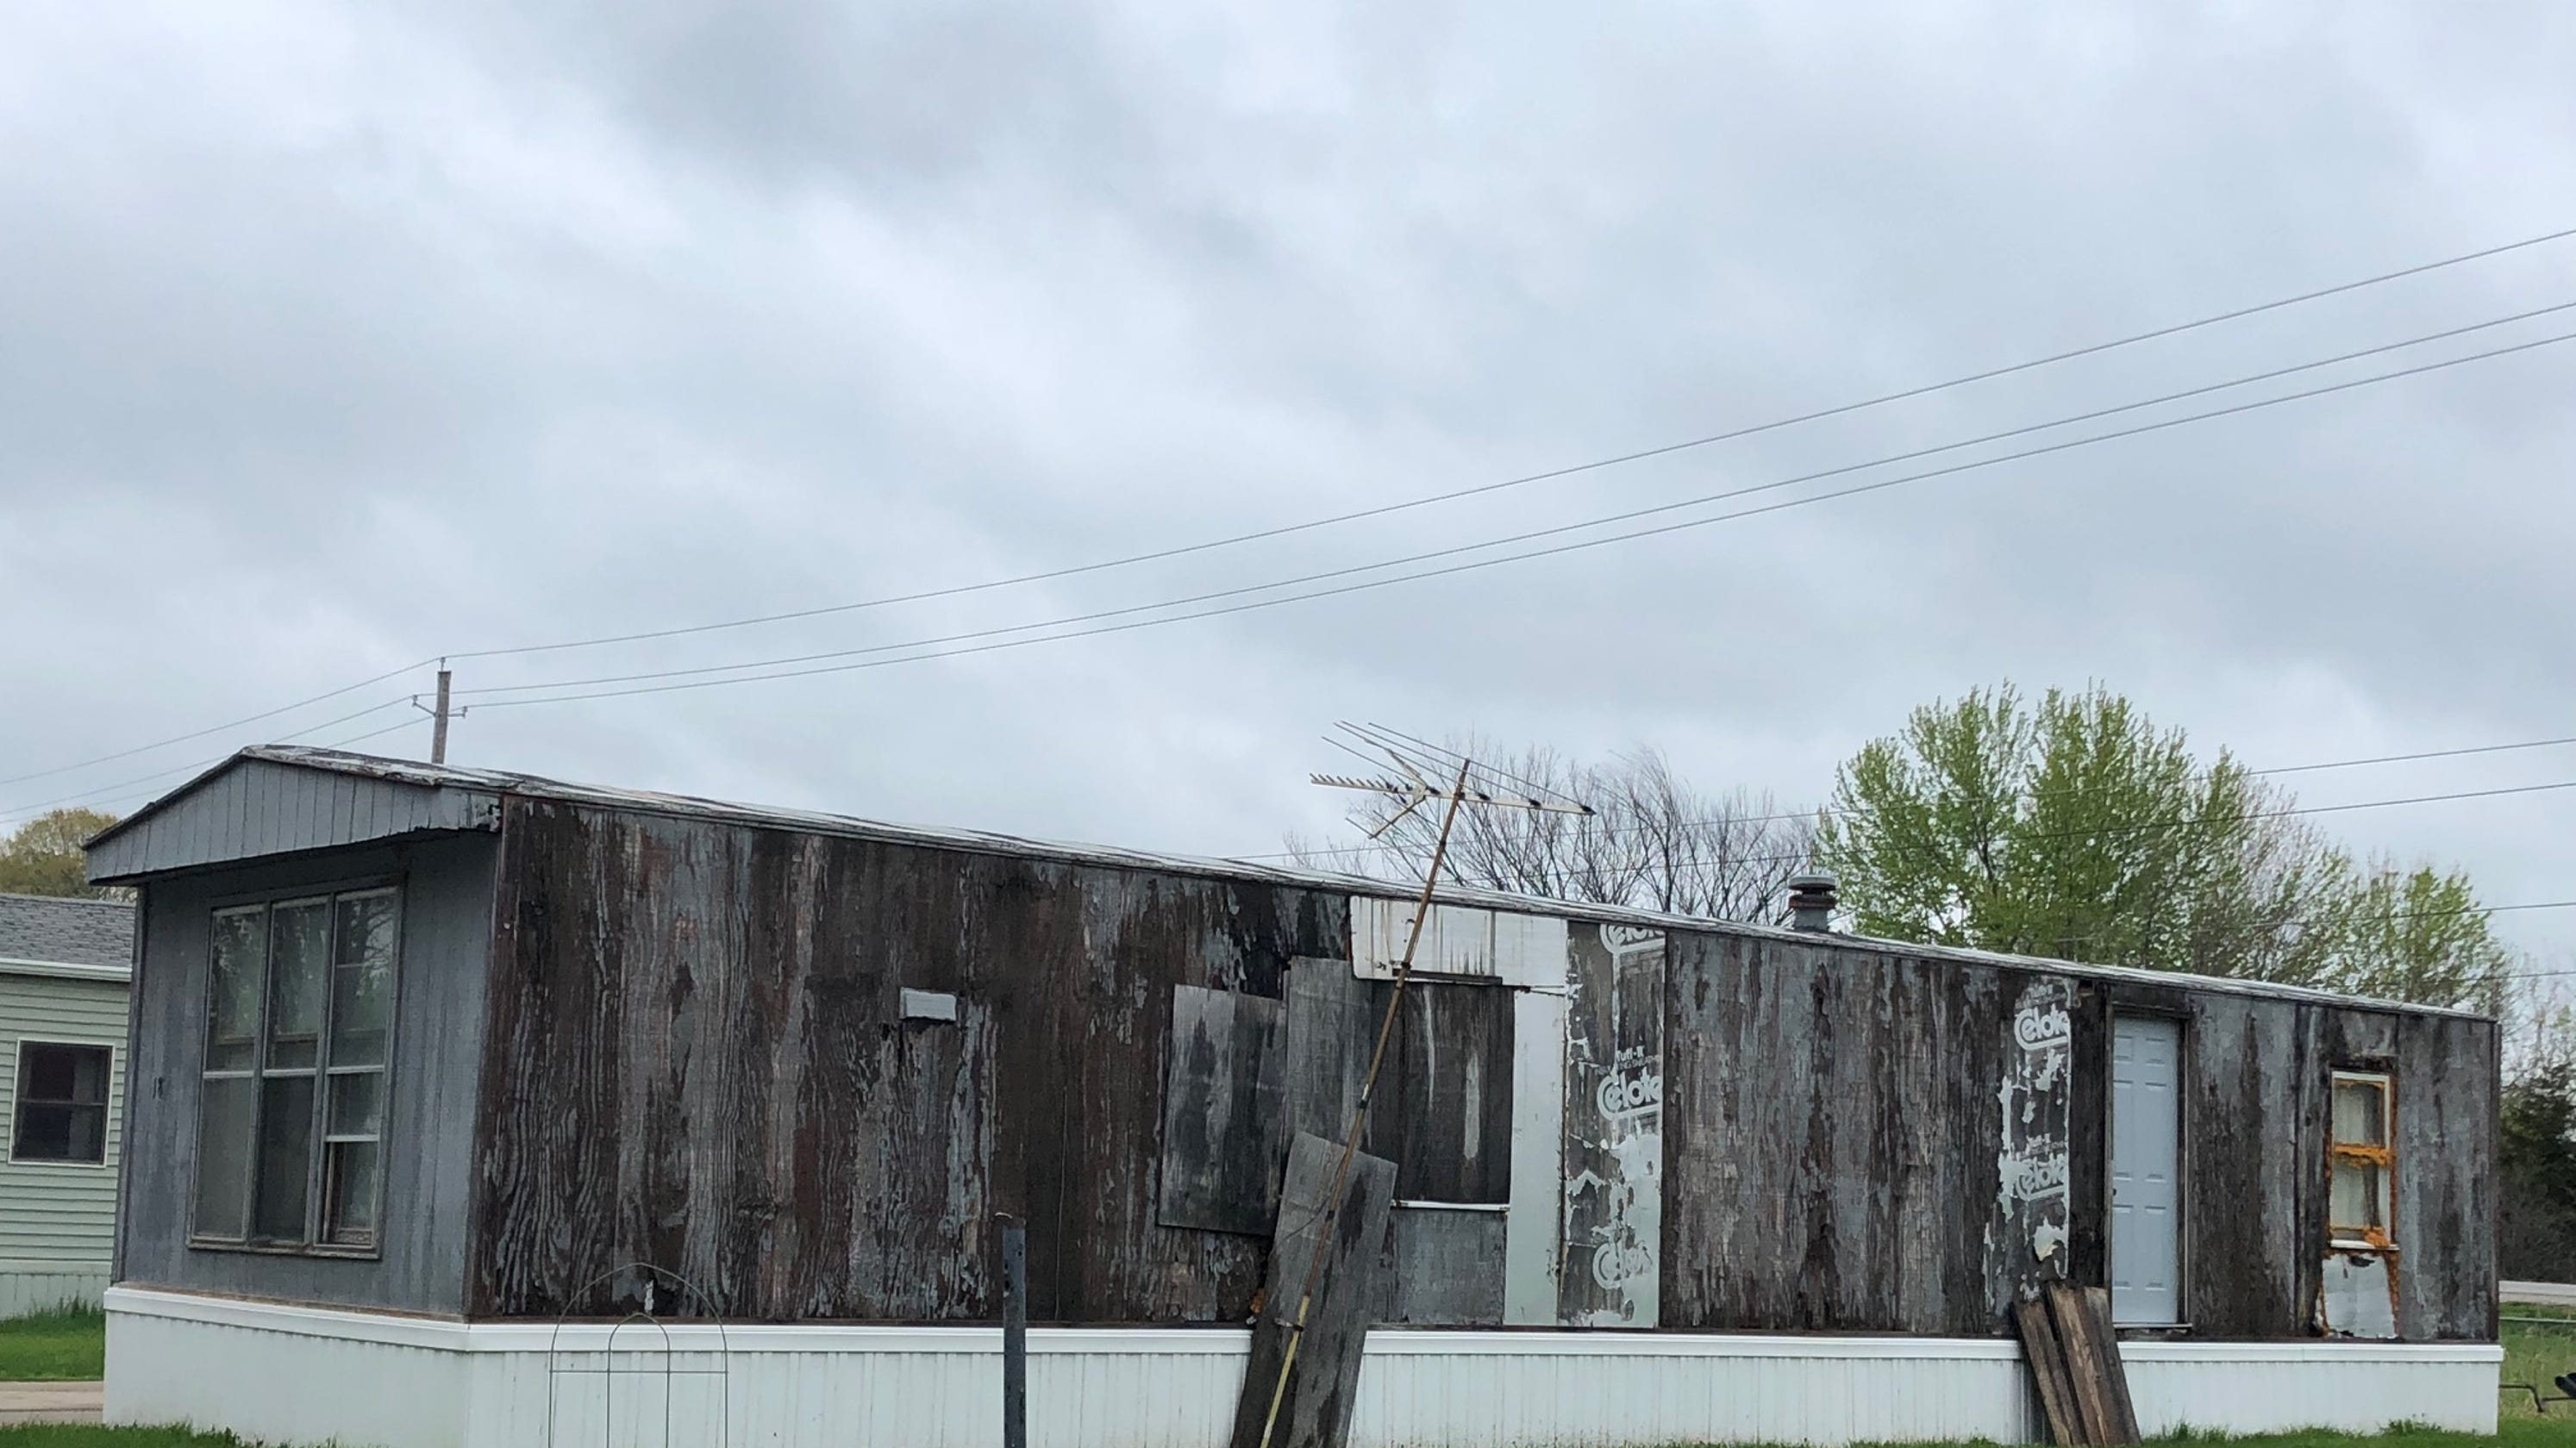 Mobile Home Tenants Wary Of Investor Firm With History Of Complaints